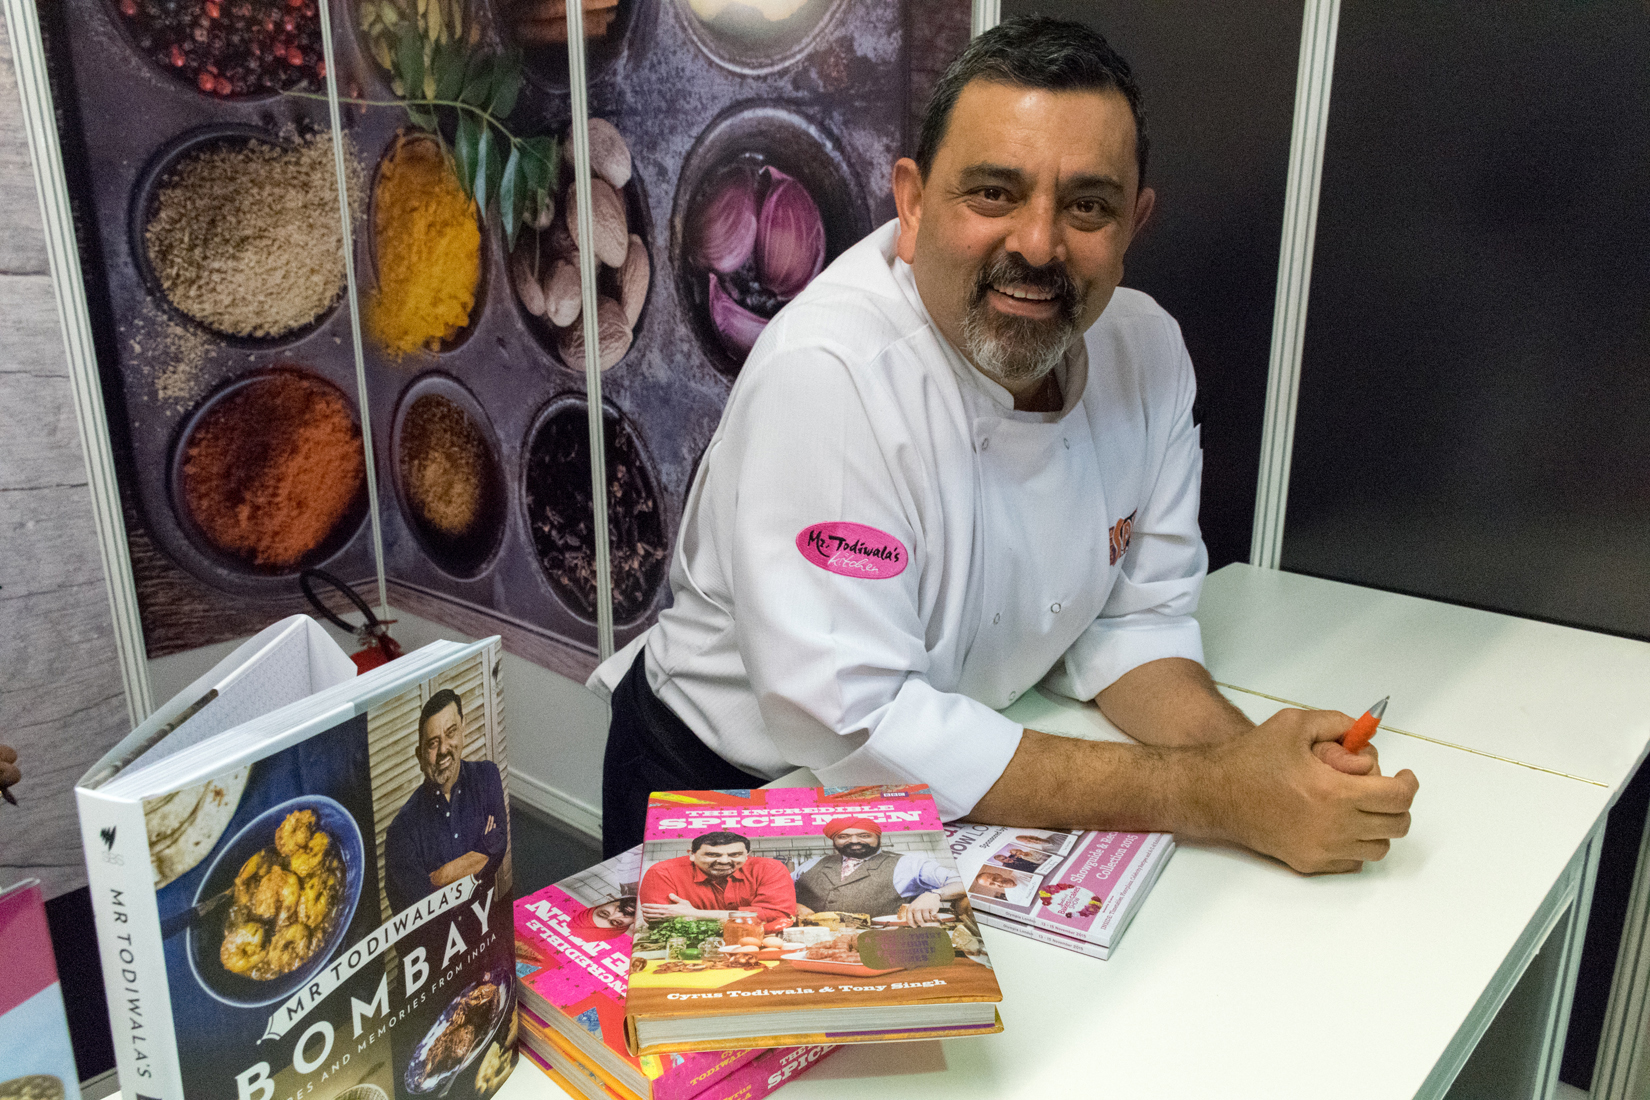 Celebrity chef Cyrus Todiwala at his Café Spice Namasté pop-up restaurant